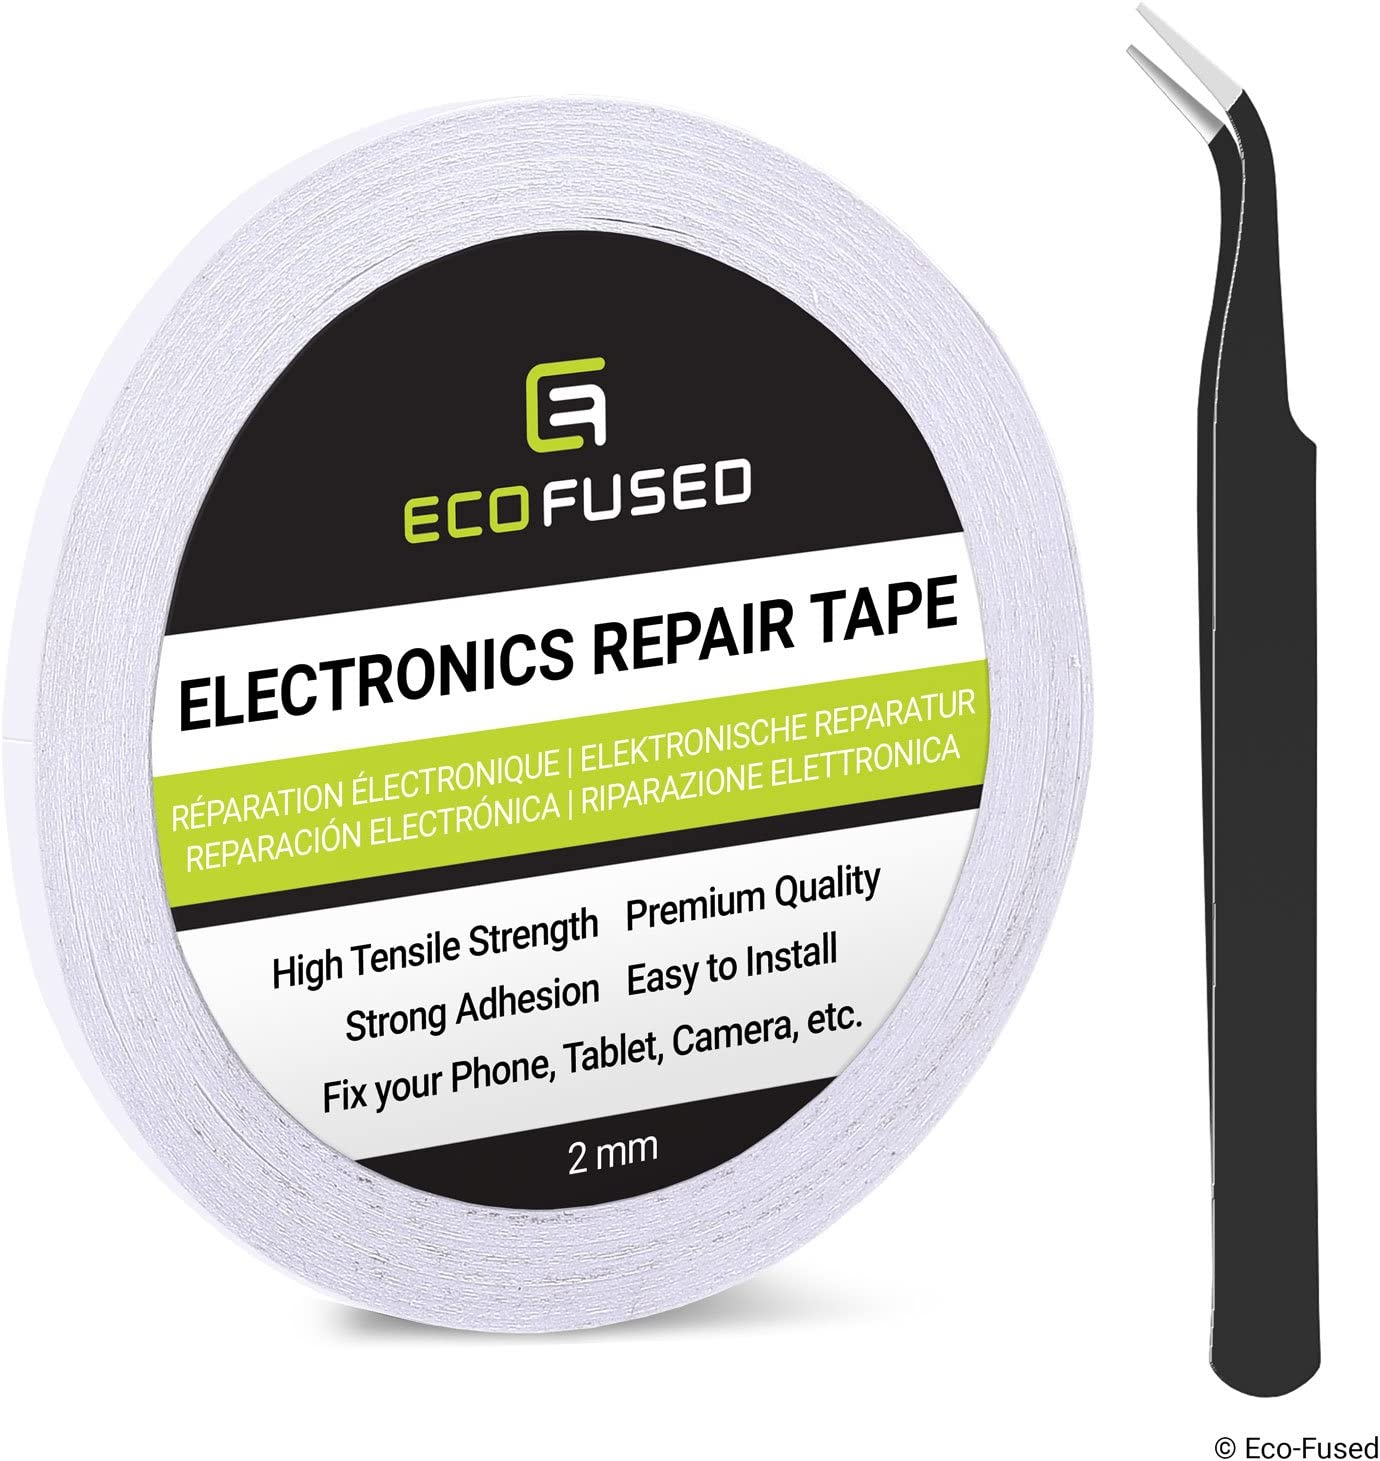 2mm Adhesive Sticker Tape for Use in Cell Phone Repair also including 1 Pair of Tweezers//ECO-FUSED Microfiber Cleaning Cloth